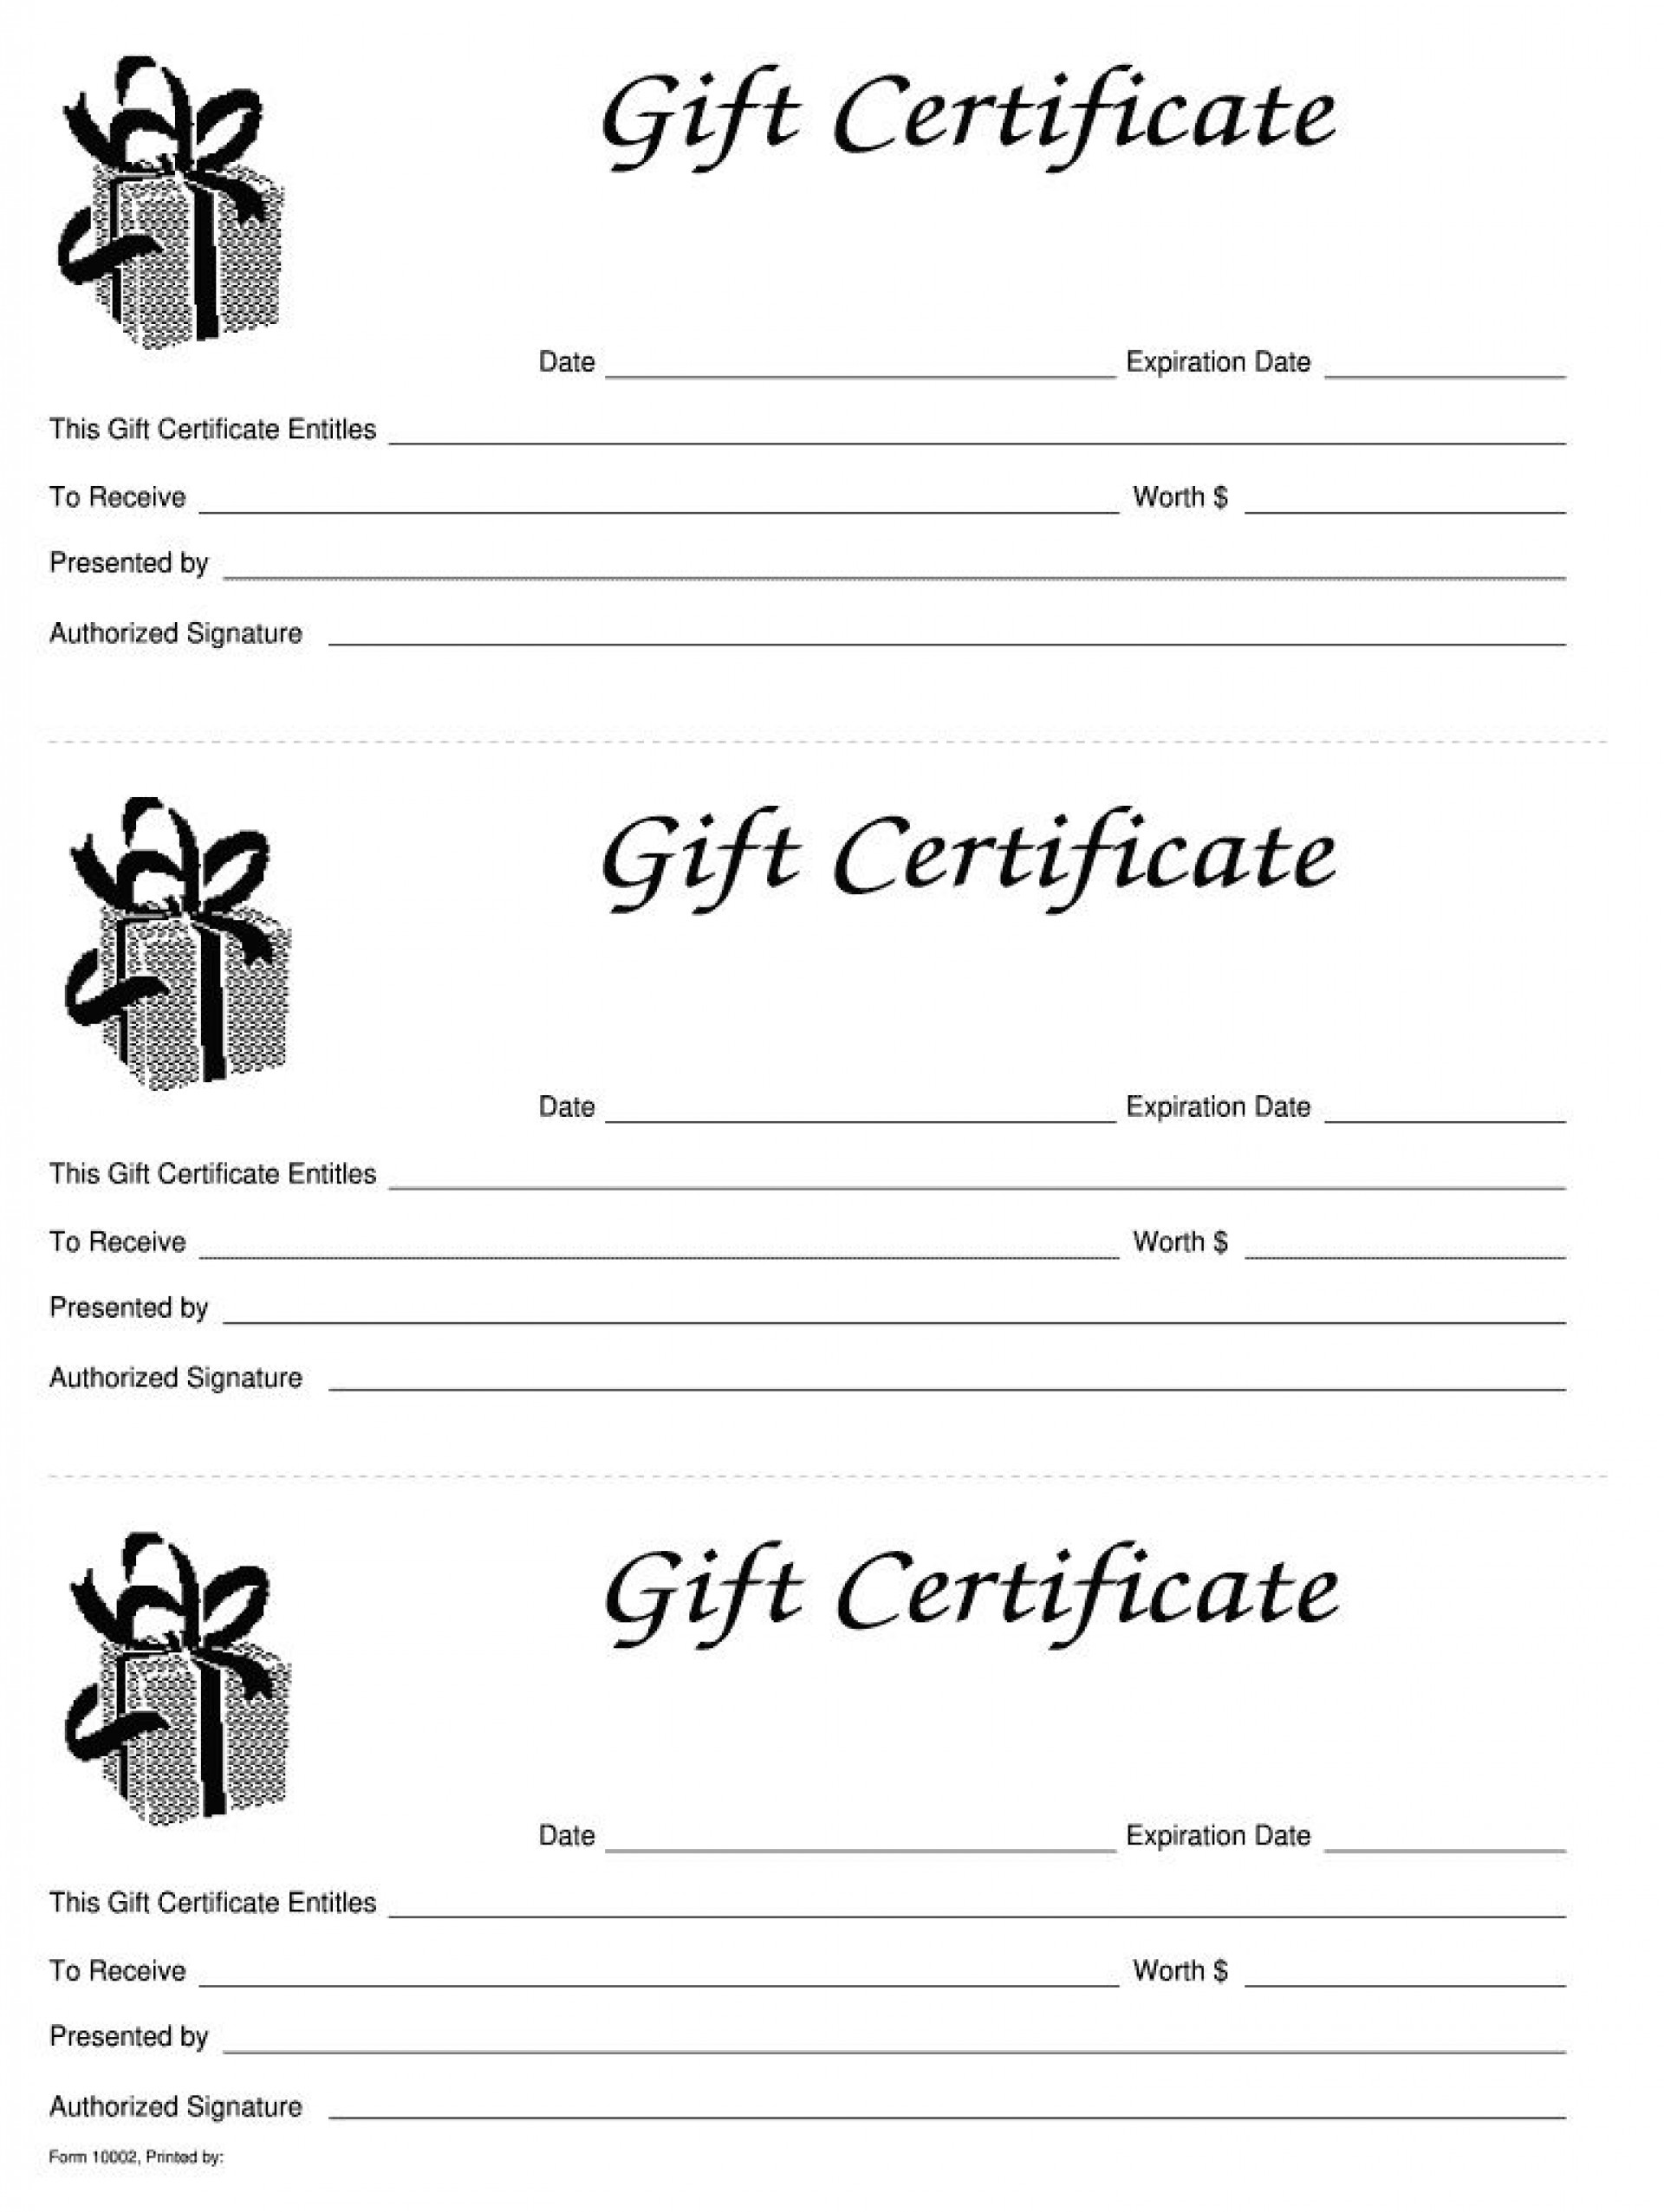 006 Simple Blank Gift Certificate Template Sample  Free Printable Downloadable1920